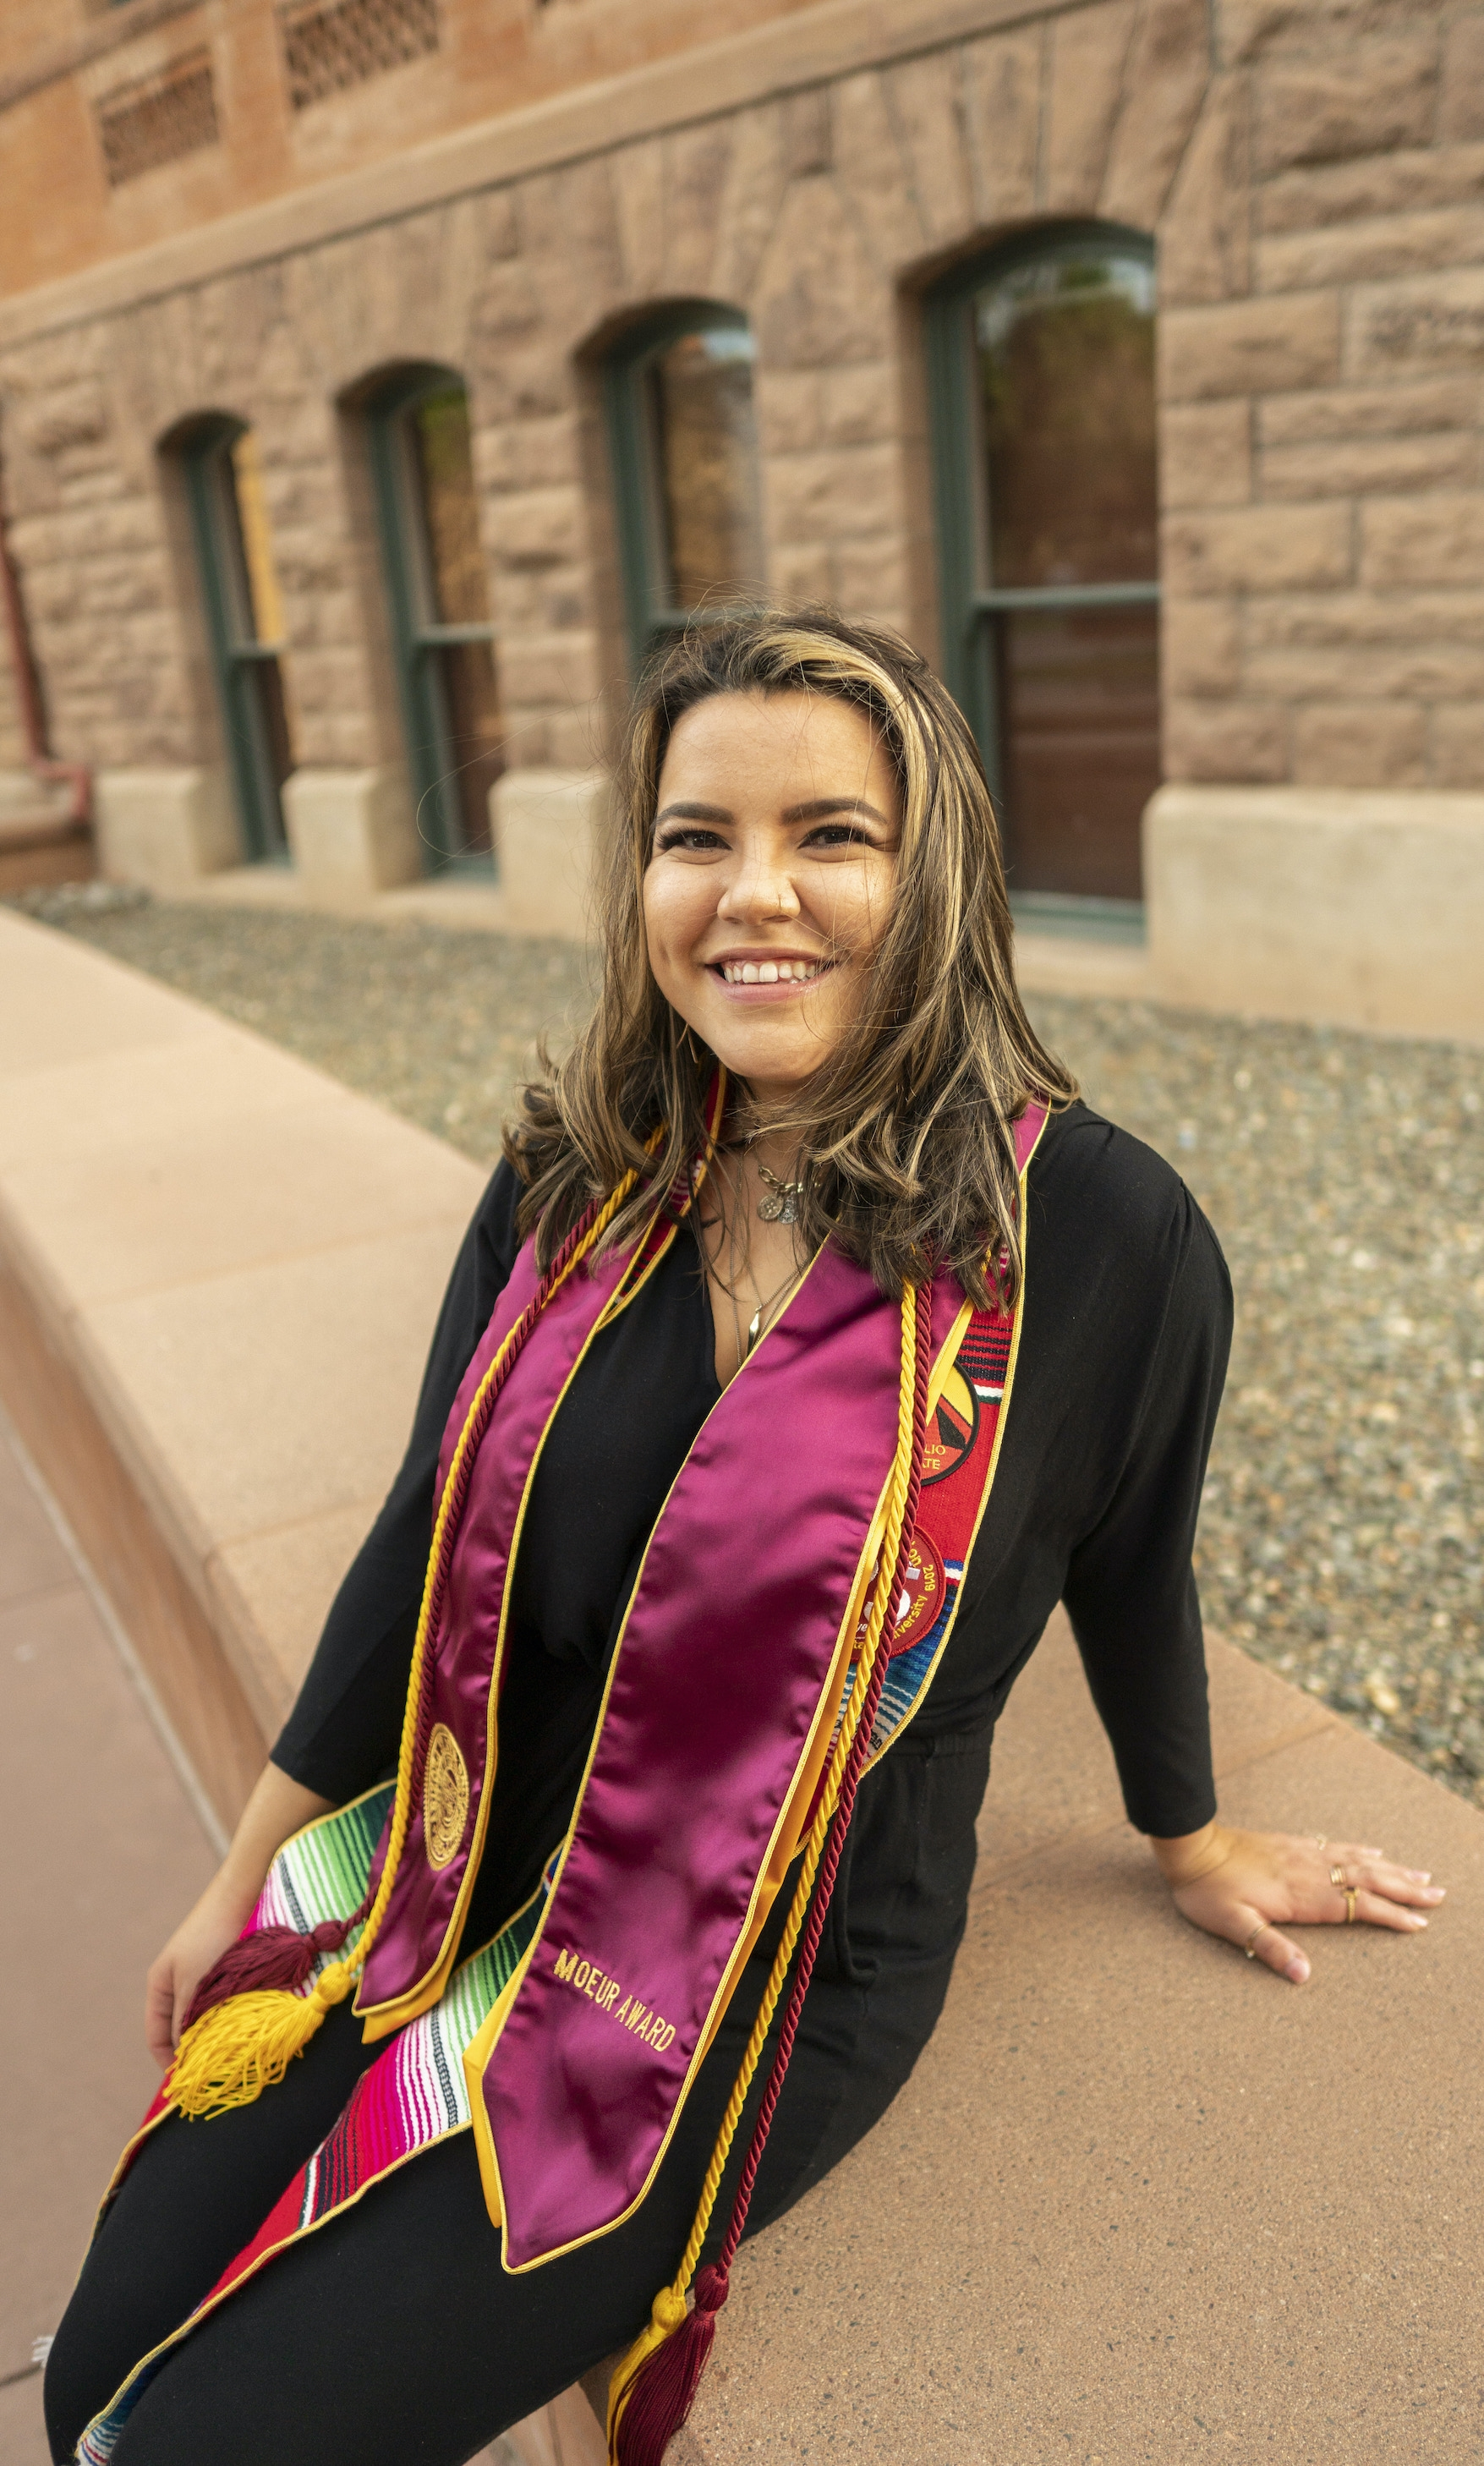 Carla Naranjo sits near Old Main wearing her graduation stoles and cords